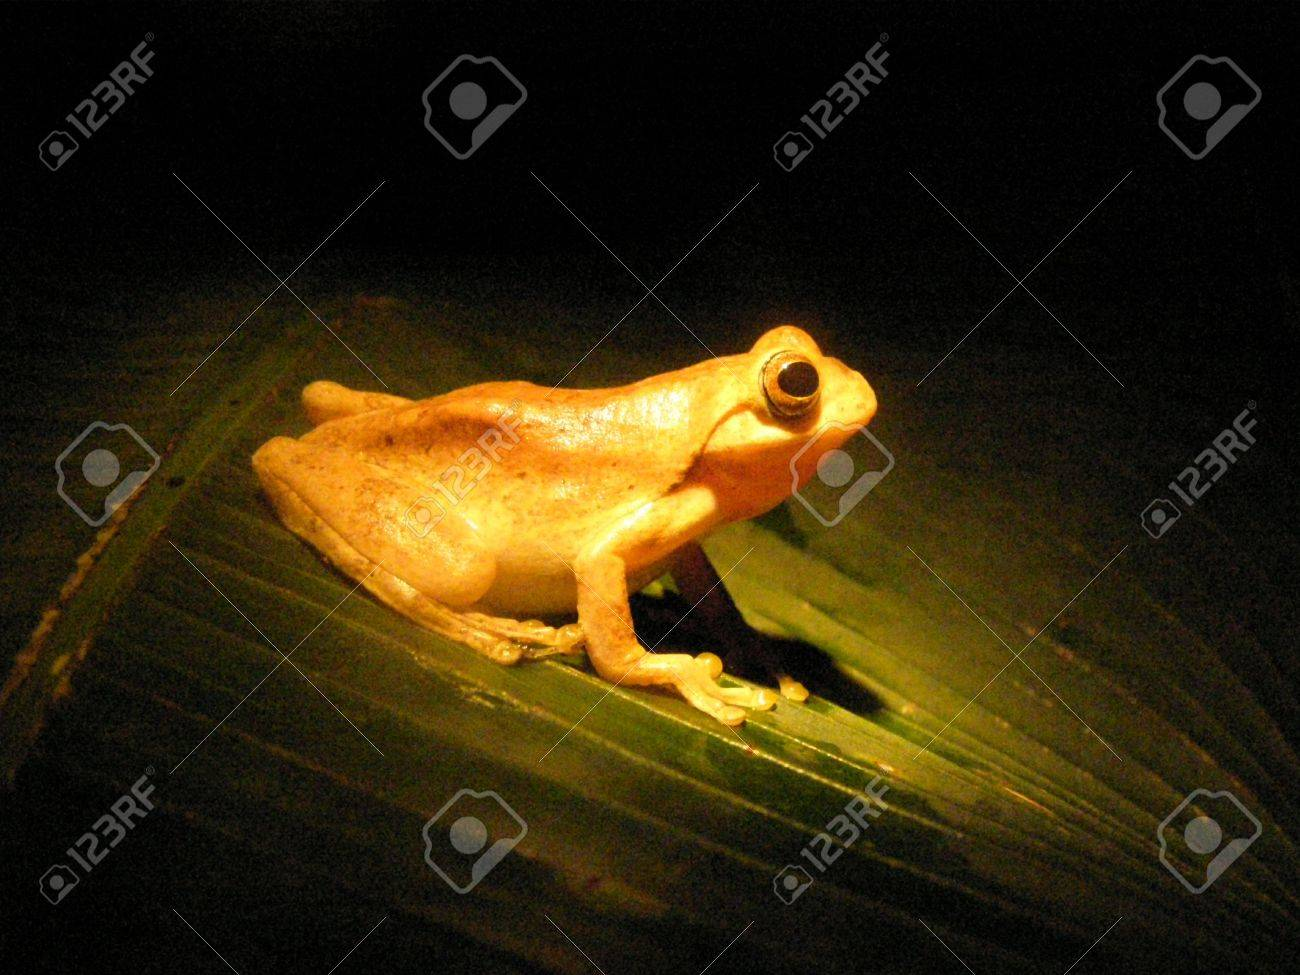 Tree Frog, Monteverde Cloud Forest, Costa Rica at night Stock Photo - 2891683